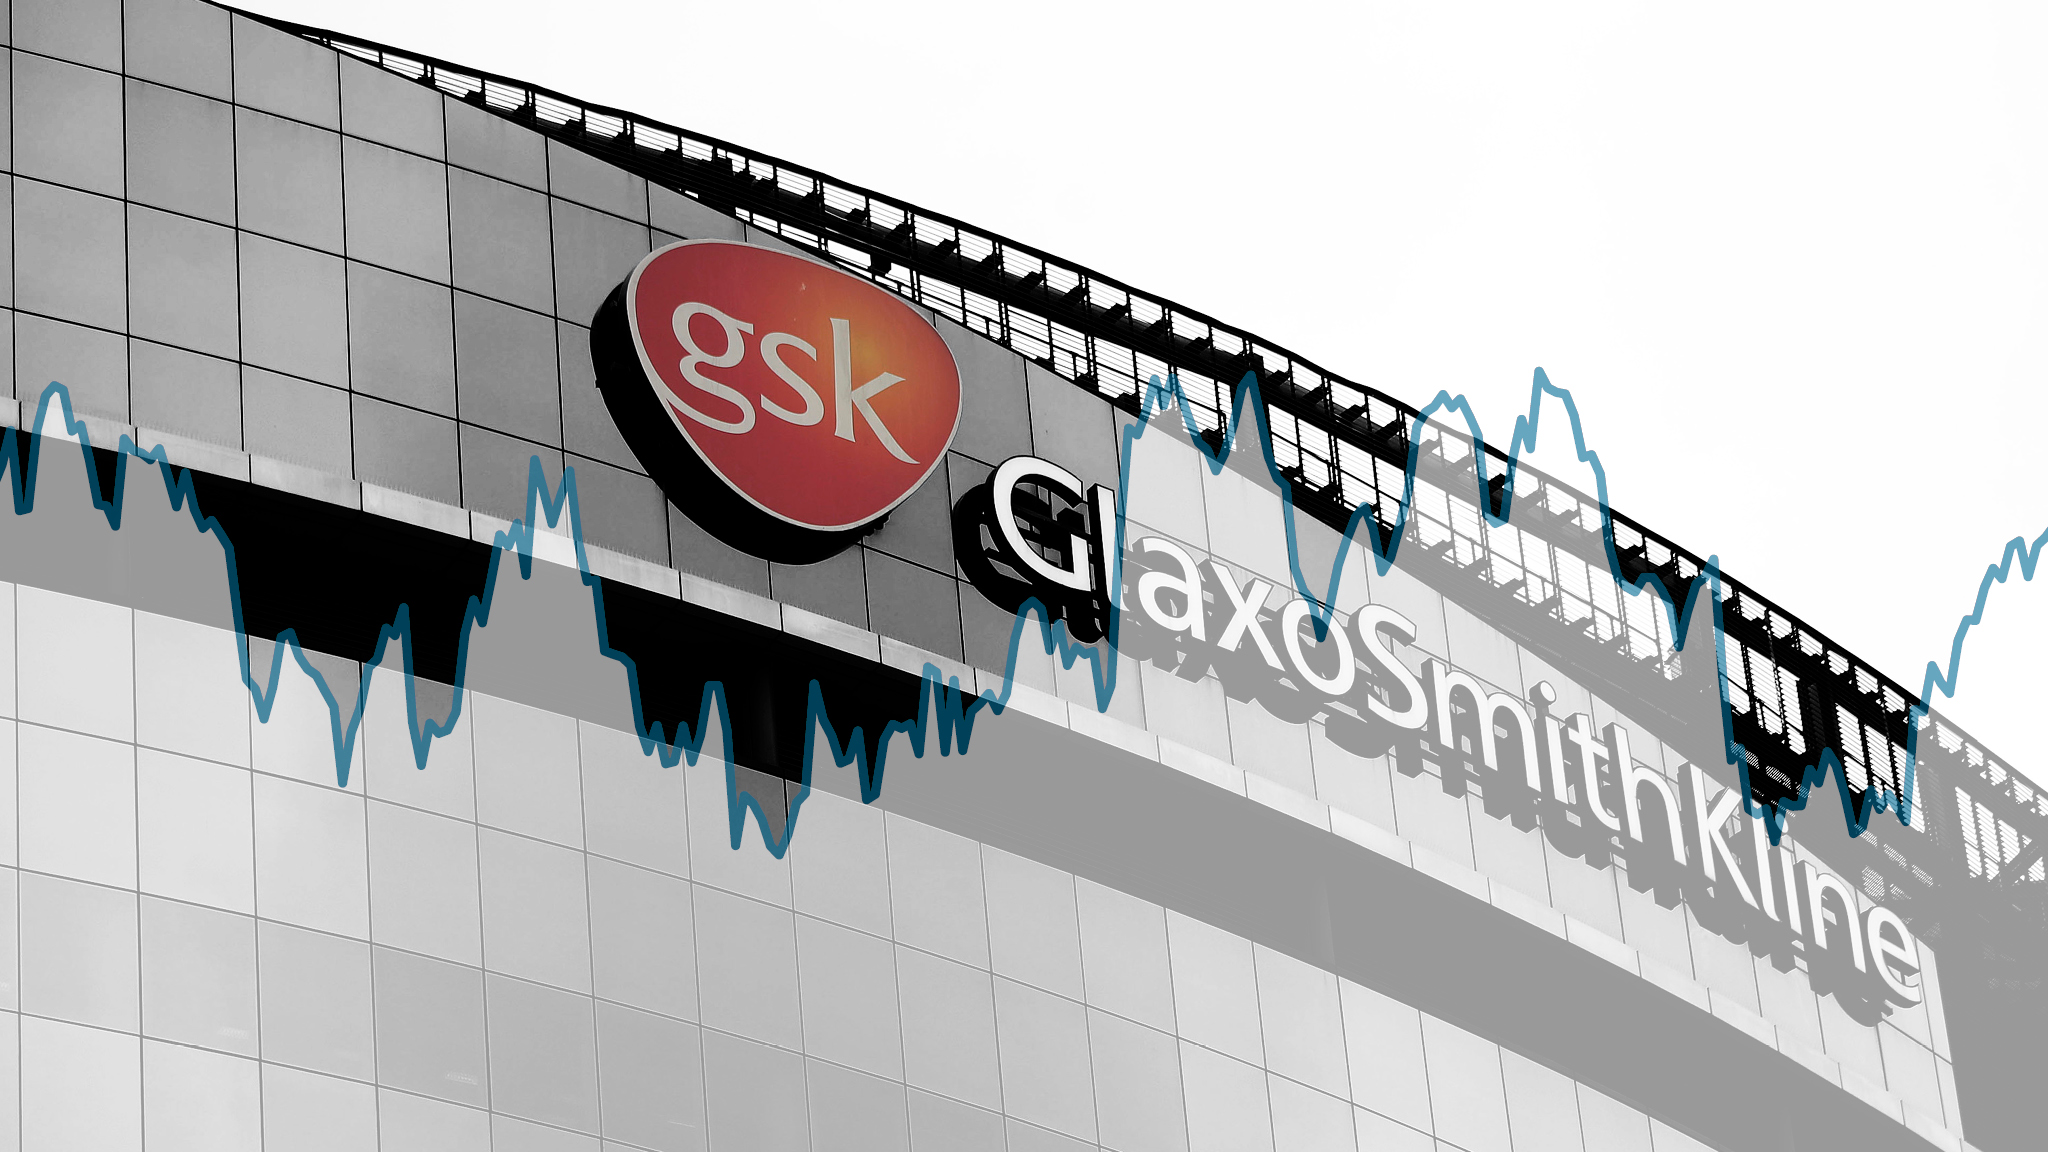 Emma Walmsley plots course out of 'hobbyland' for GSK